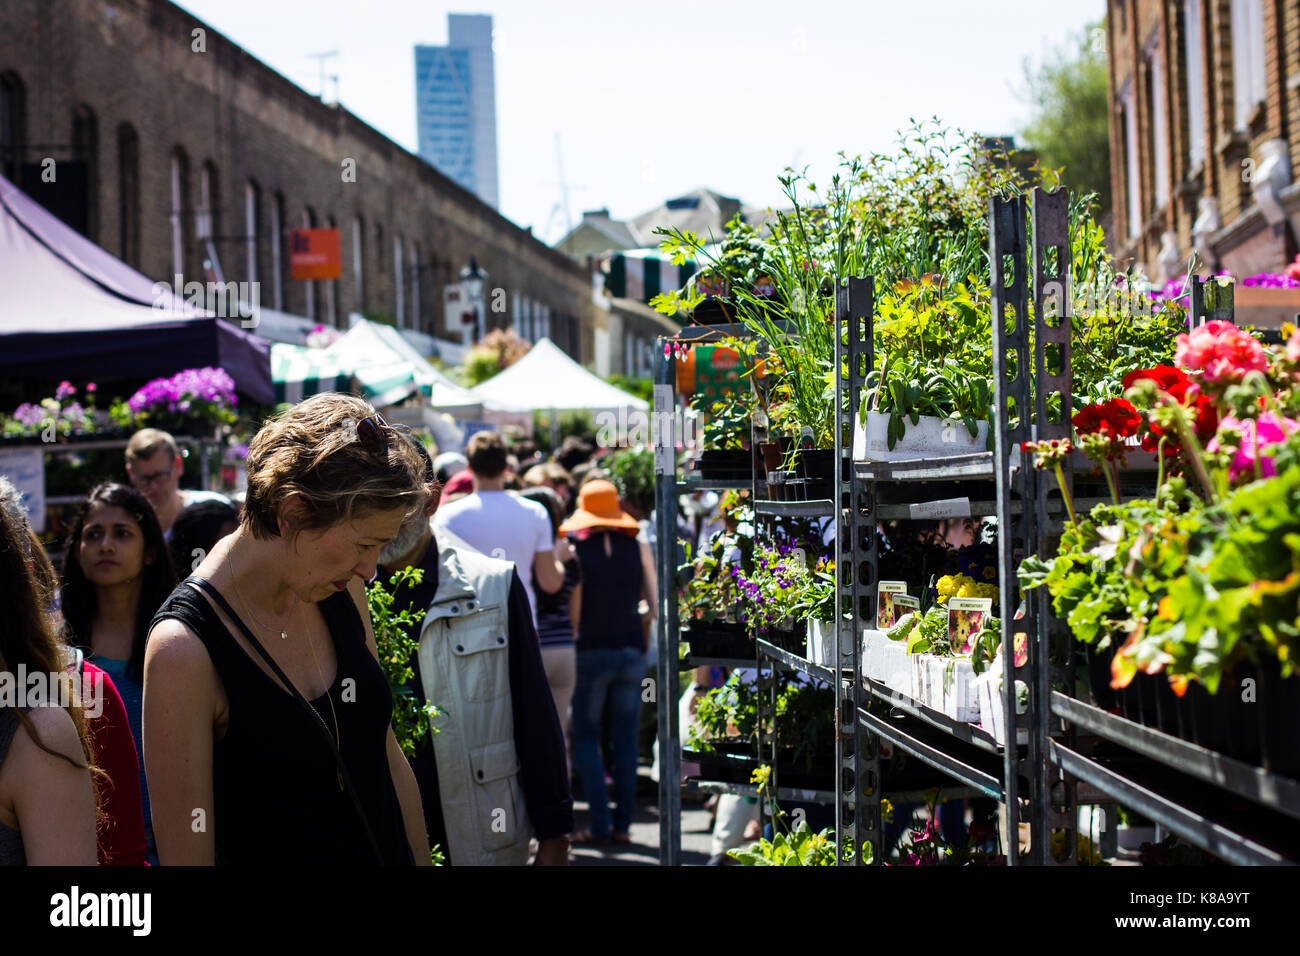 Tourists and locals jostle for space amongst the plants at Columbia Road Flower Market - Stock Image